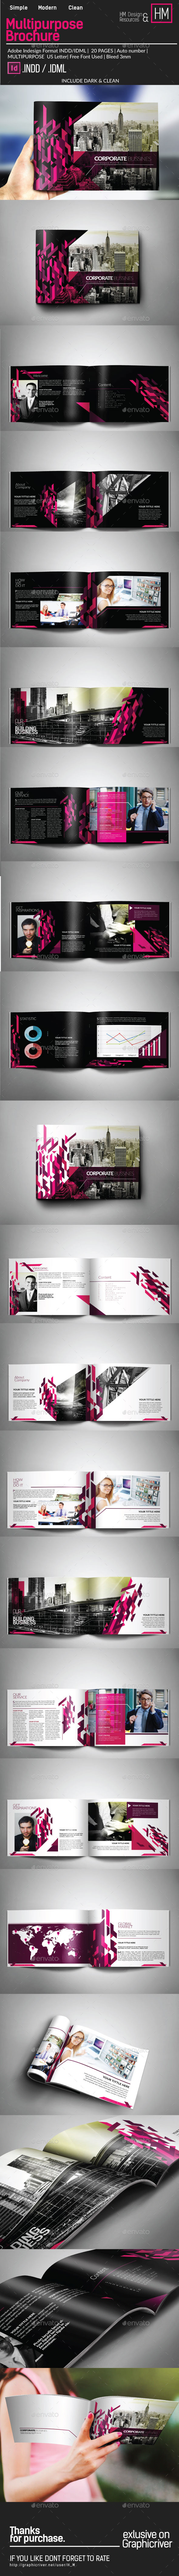 GraphicRiver Multipurpose Corporate Brochure 10559441